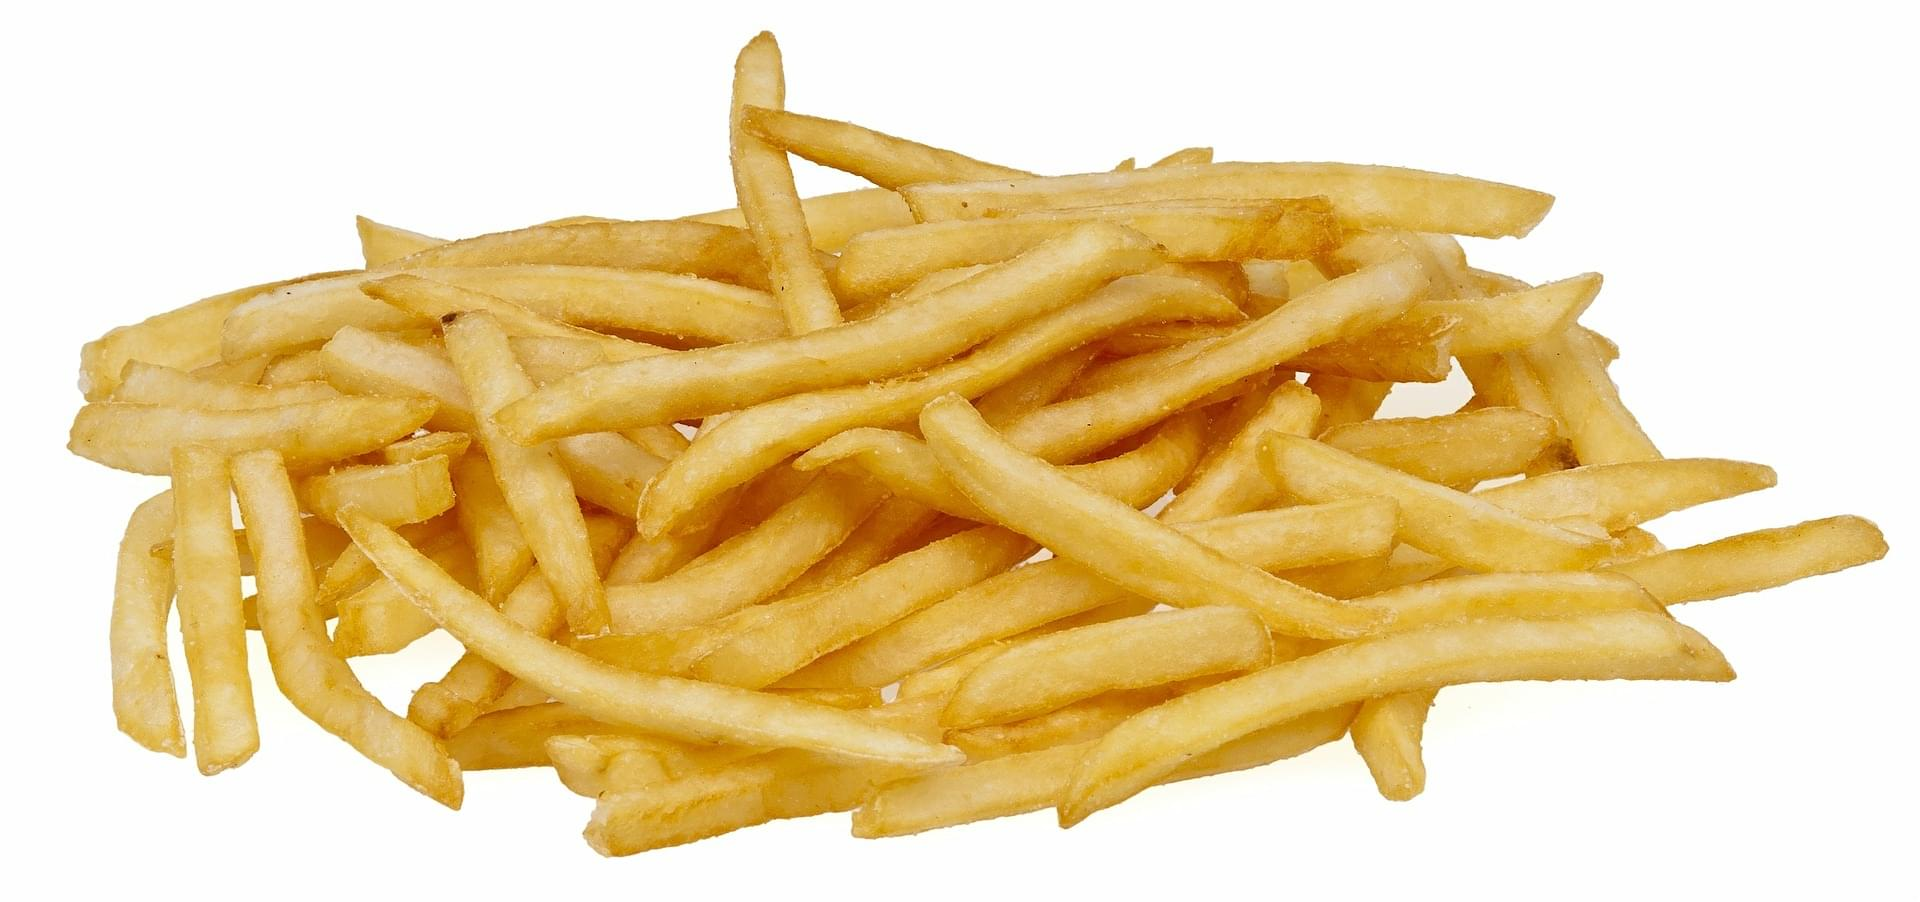 french-fries-525005_1920